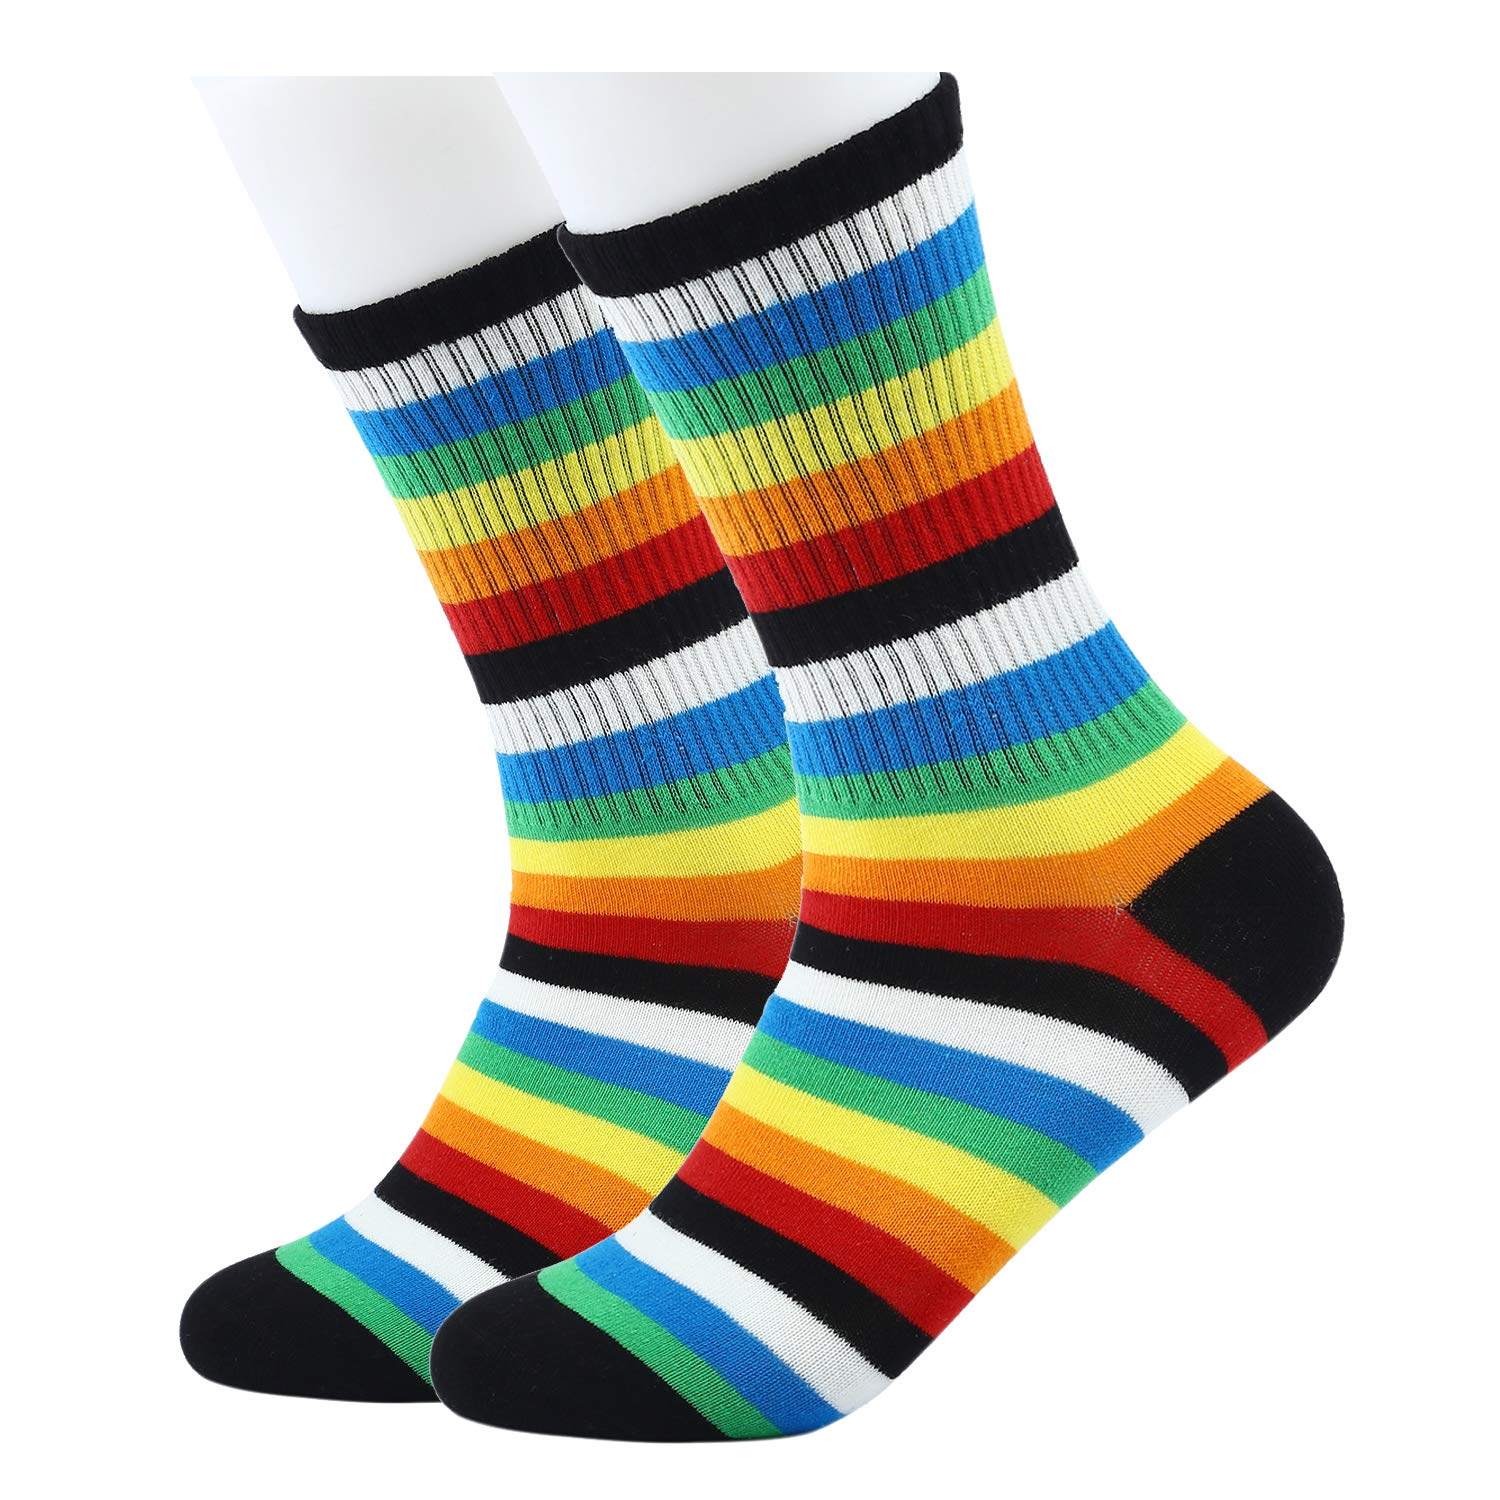 Comfortable bright socks